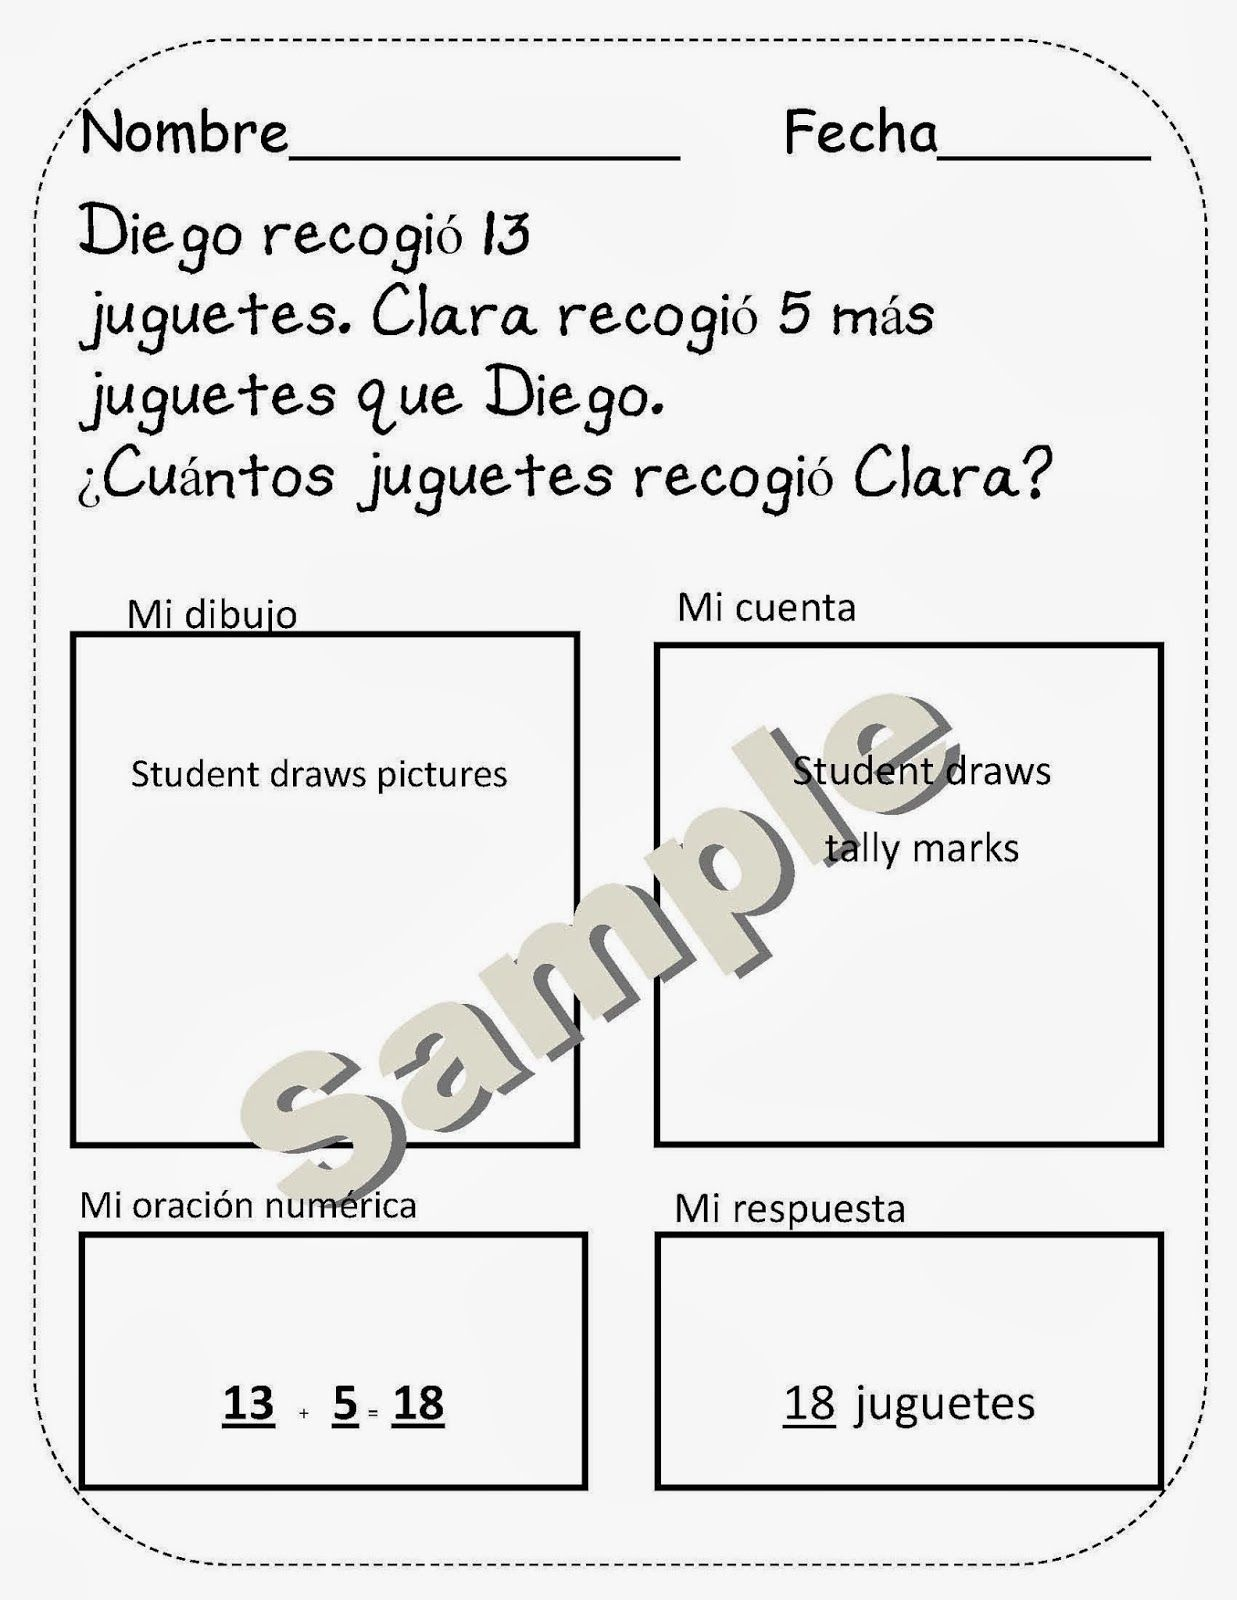 Fun Key Dual Language For First Grade Spanish Math Word Problems Math Word Problems Word Problems Math Worksheets